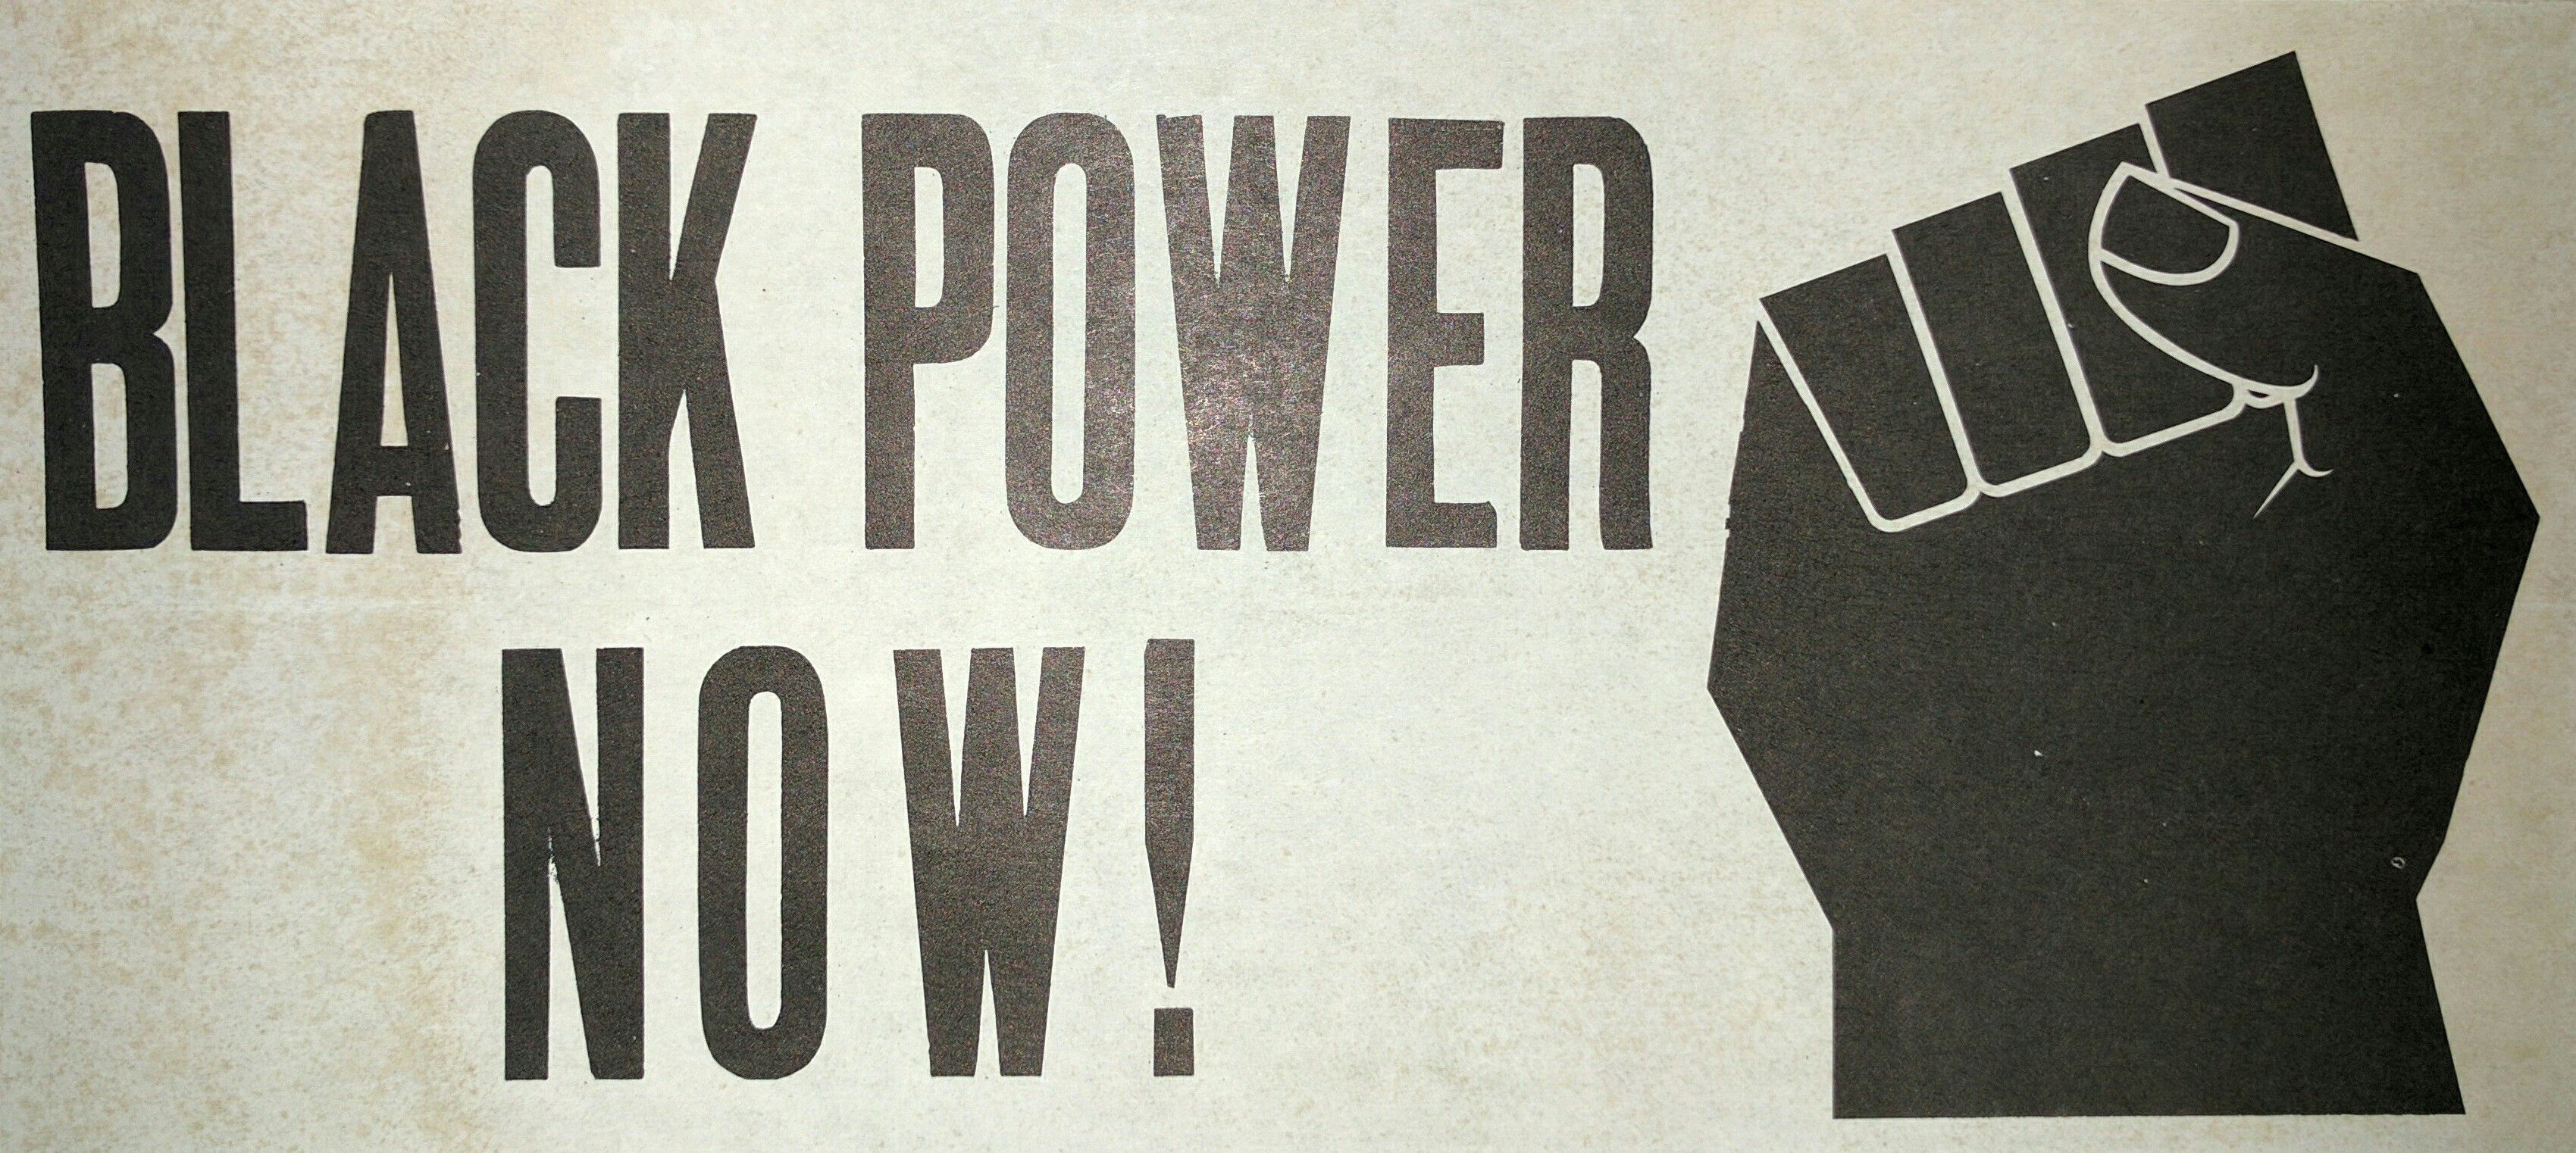 Black Power Now!